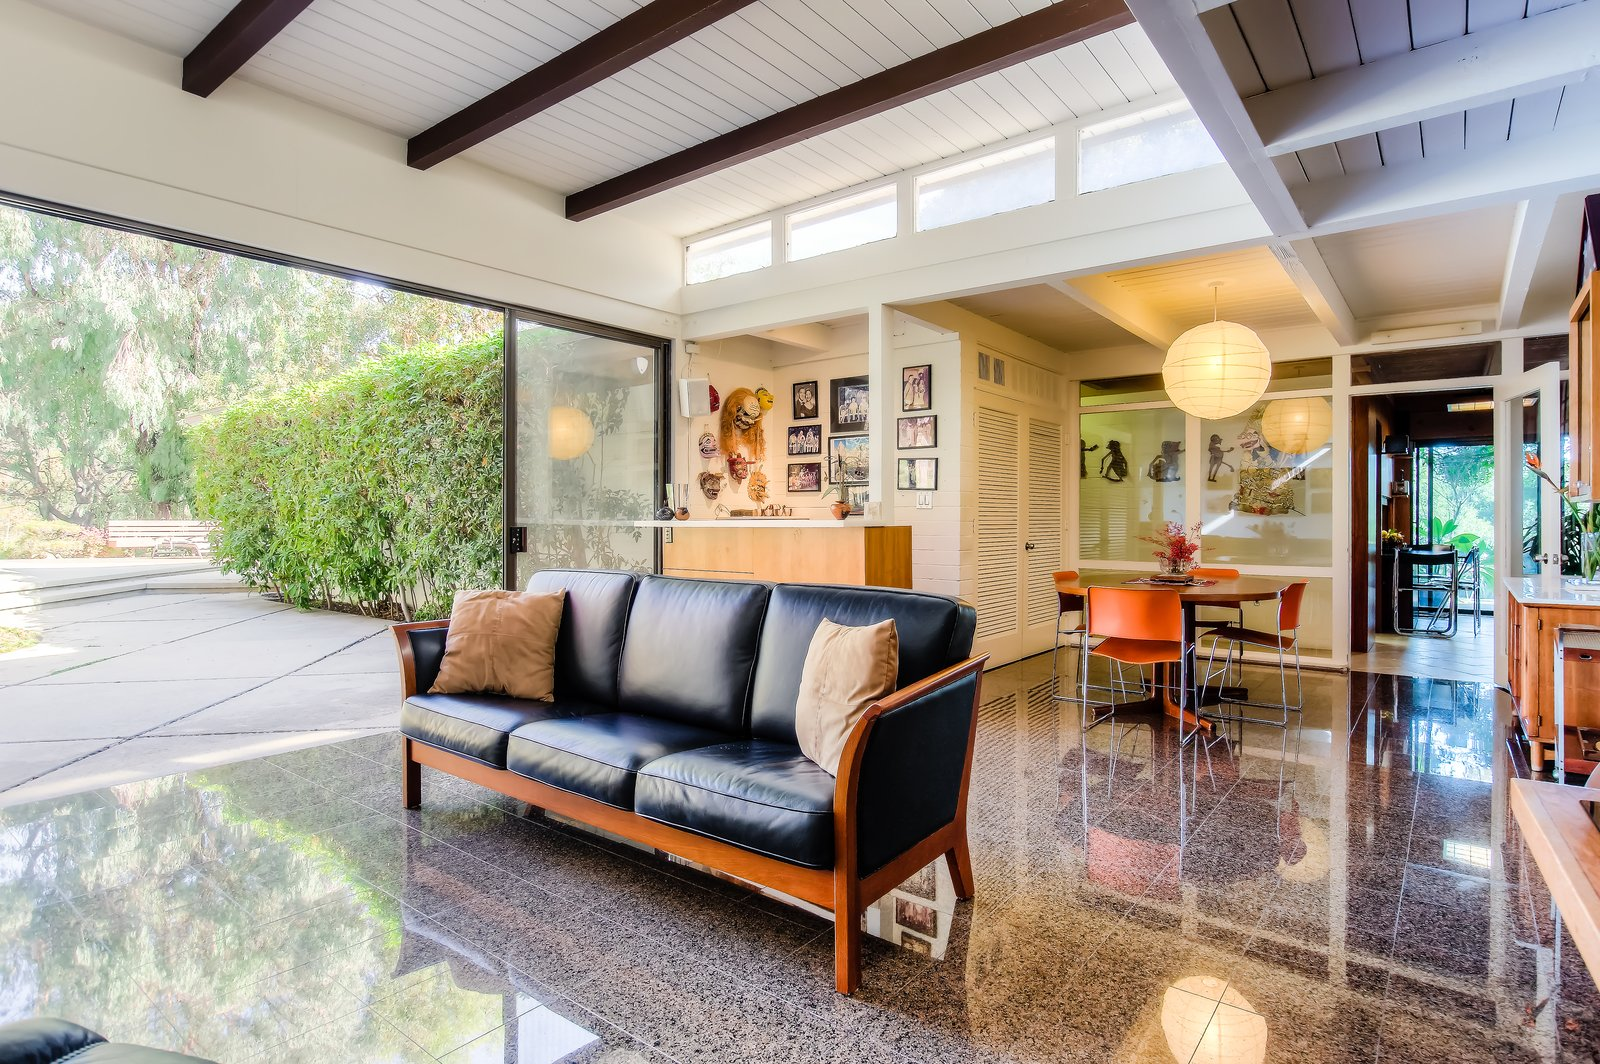 Dining Room, Table, Bar, Pendant Lighting, Chair, and Storage  Photo 6 of 10 in An Exceptional Midcentury by Case Study Architect Pierre Koenig Hits the Market